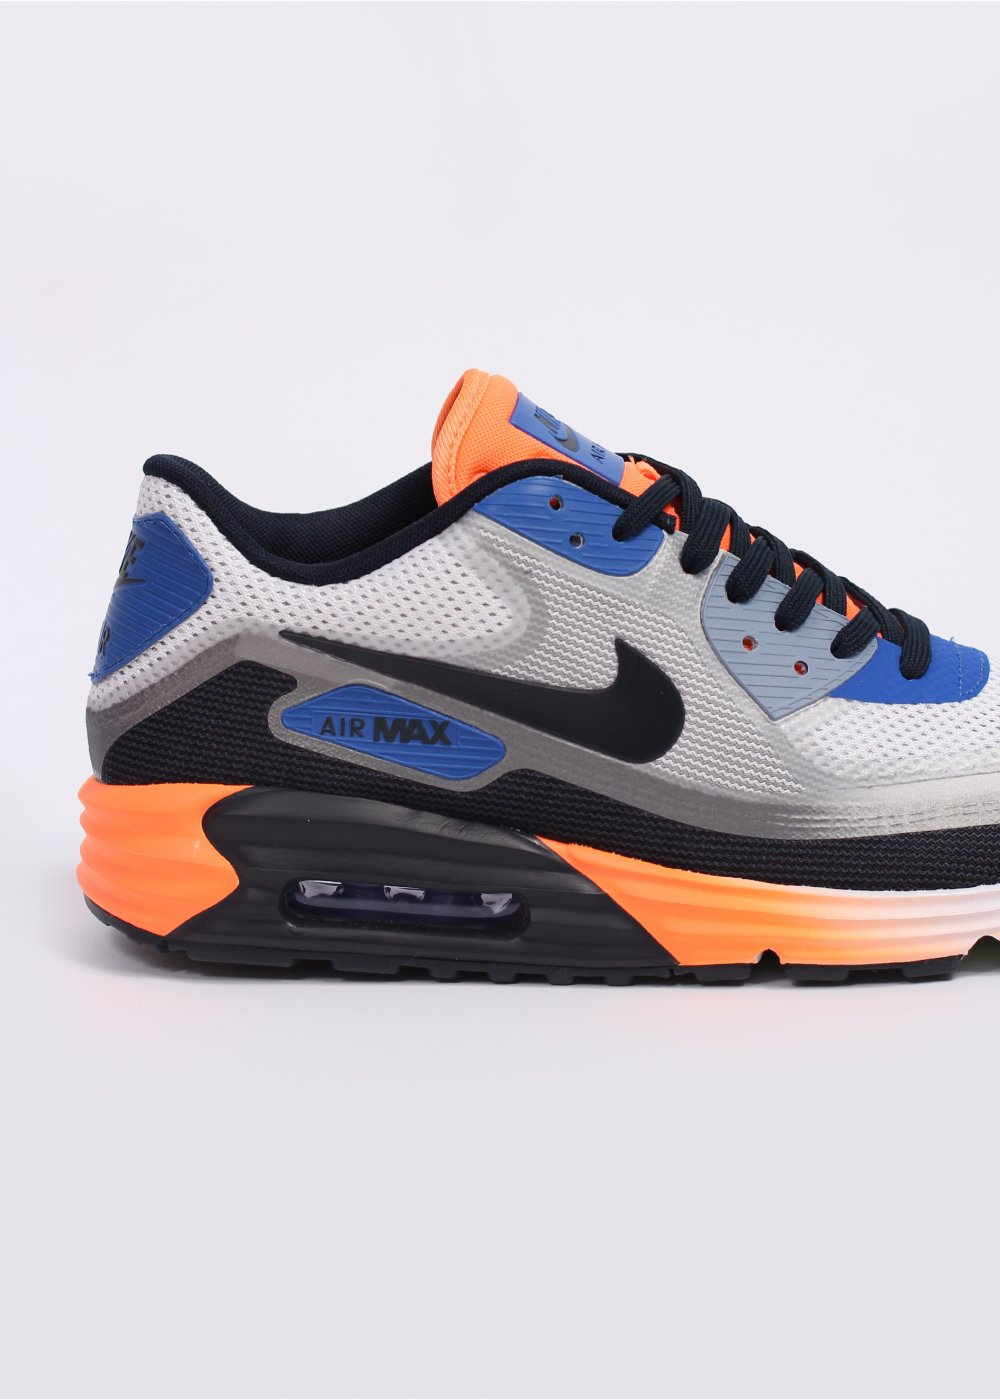 the nike air max 90 lunar white obsidian. Black Bedroom Furniture Sets. Home Design Ideas